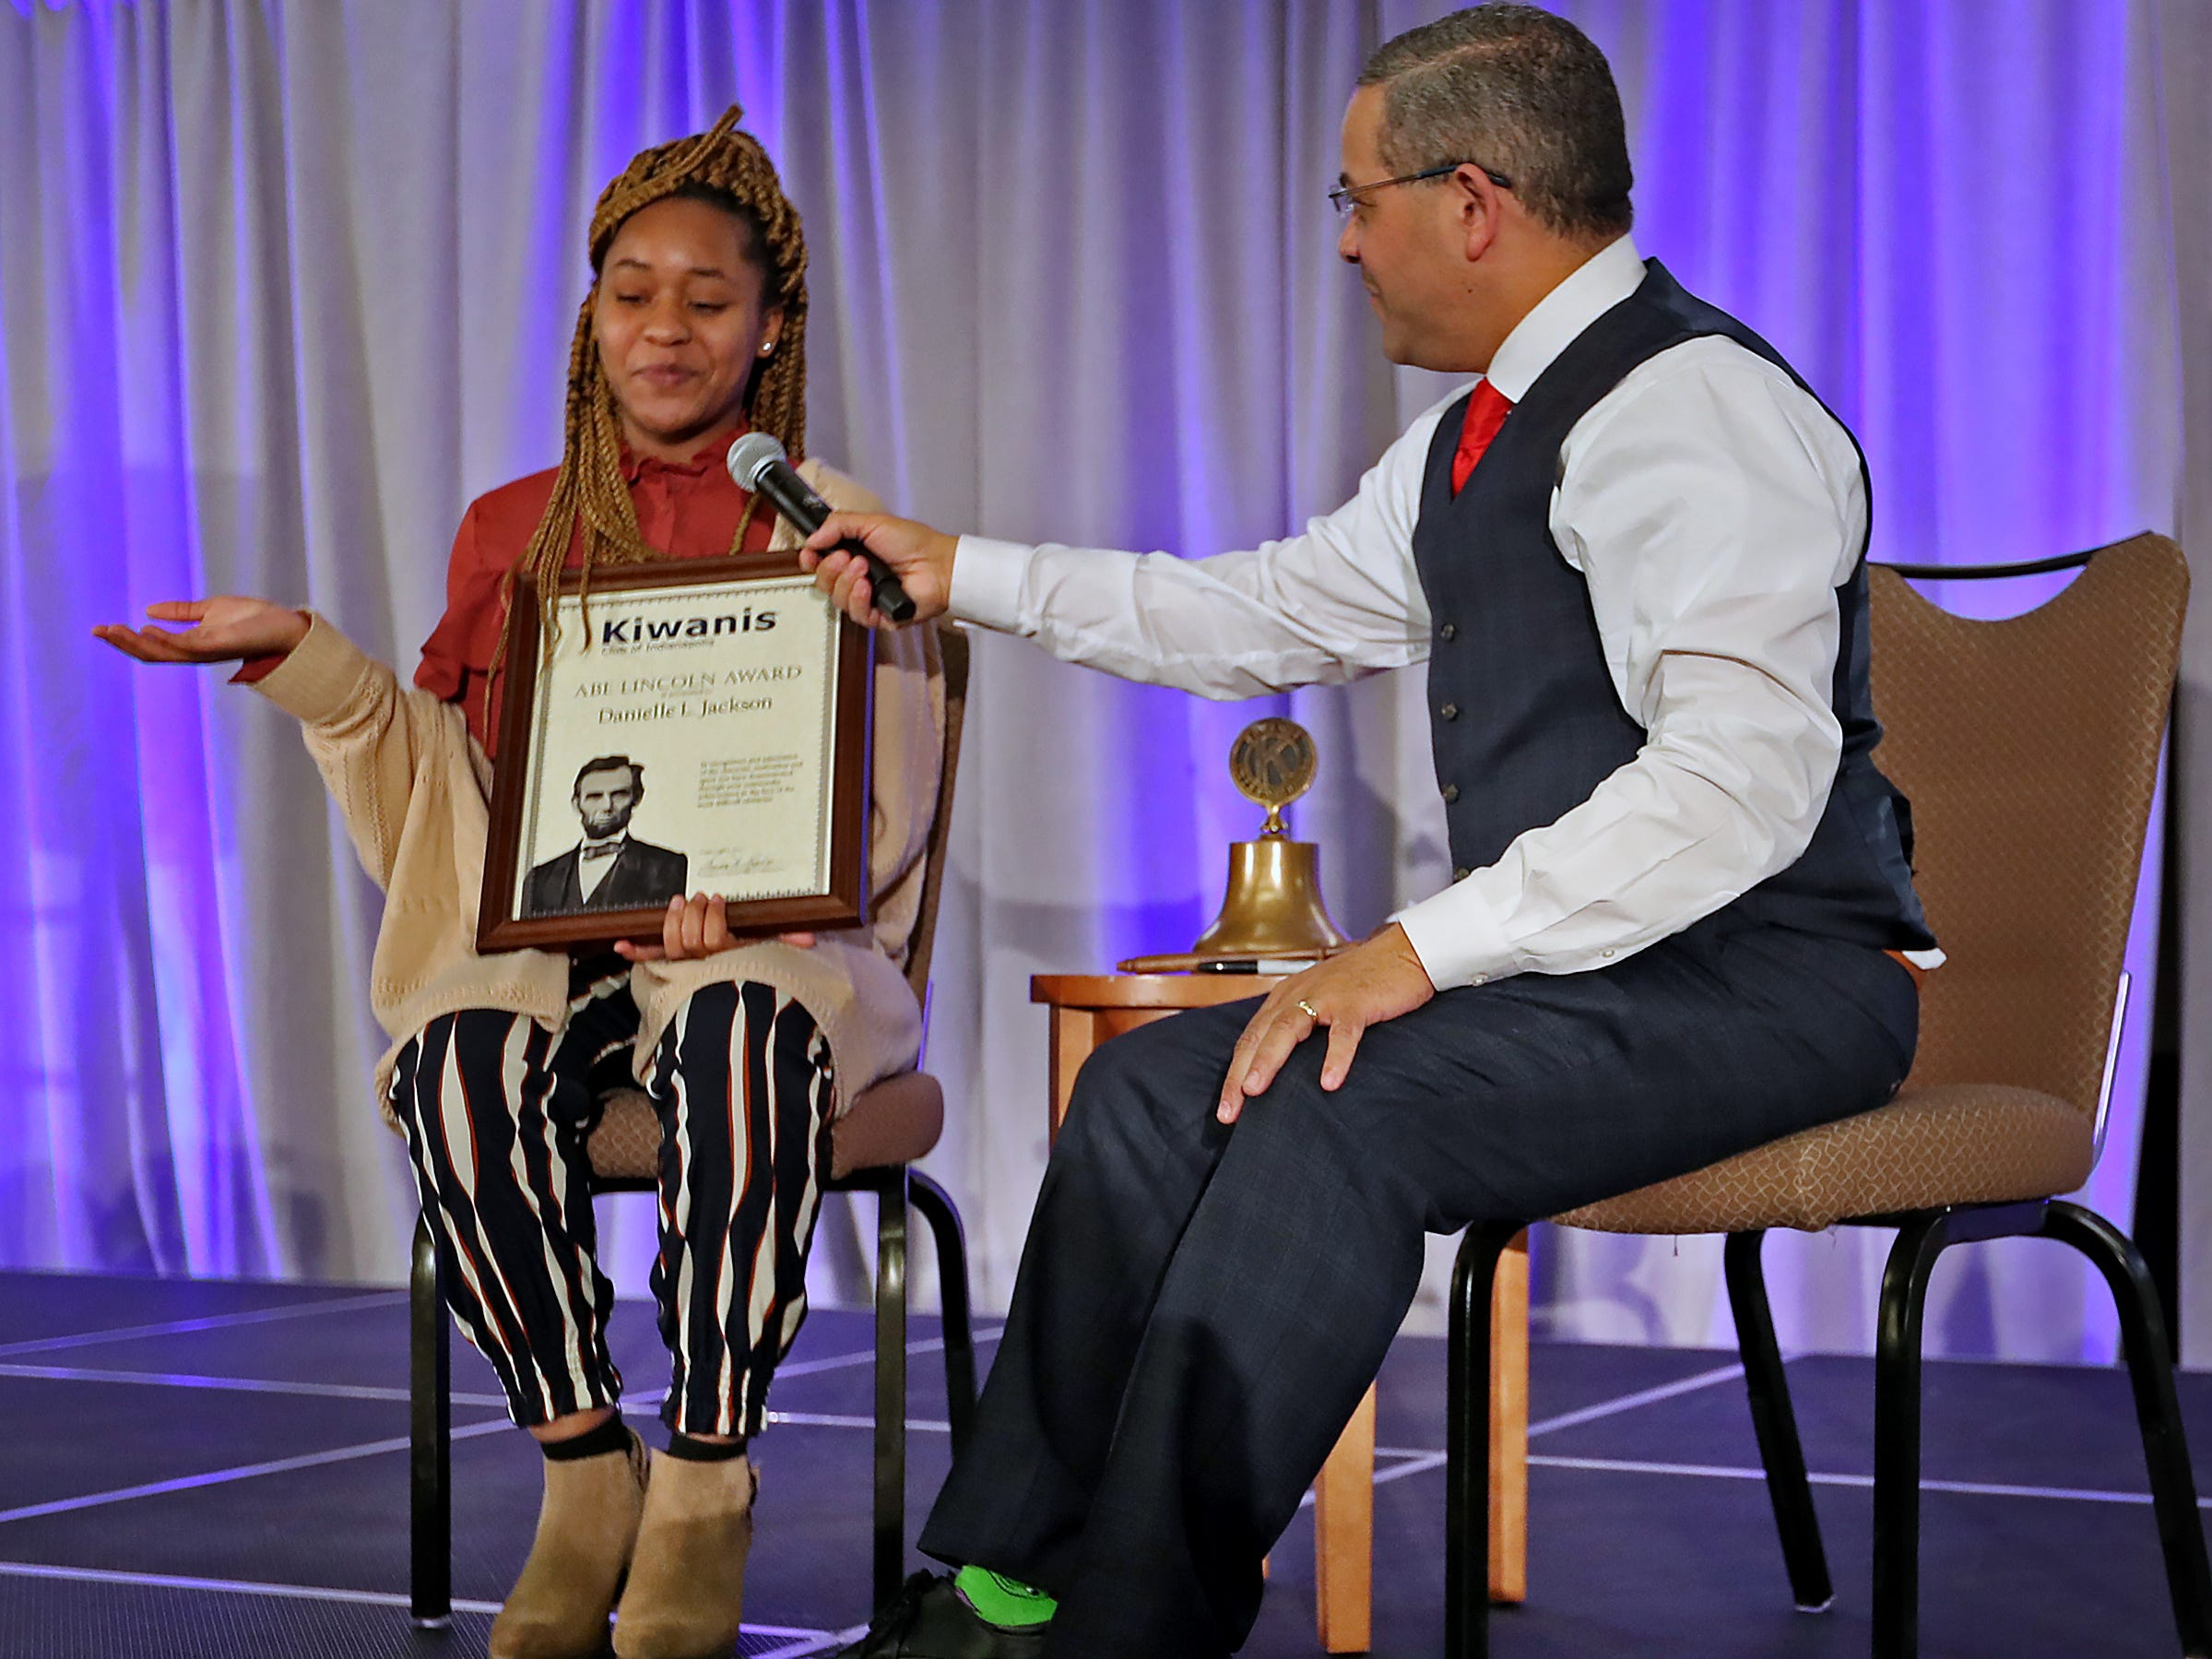 Pike High School student Danielle Jackson, left, is interviewed by Rafael Sanchez after receiving her 2nd Place Scholarship award at the 44th Annual Abe Lincoln Awards Program, Friday, Feb. 8, 2019. The Kiwanis Club of Indianapolis program was held at Ivy Tech Community College.  20 high school student were honored at the annual event which celebrates overcoming adversity in life to succeed. Four of the 20 students received scholarships.